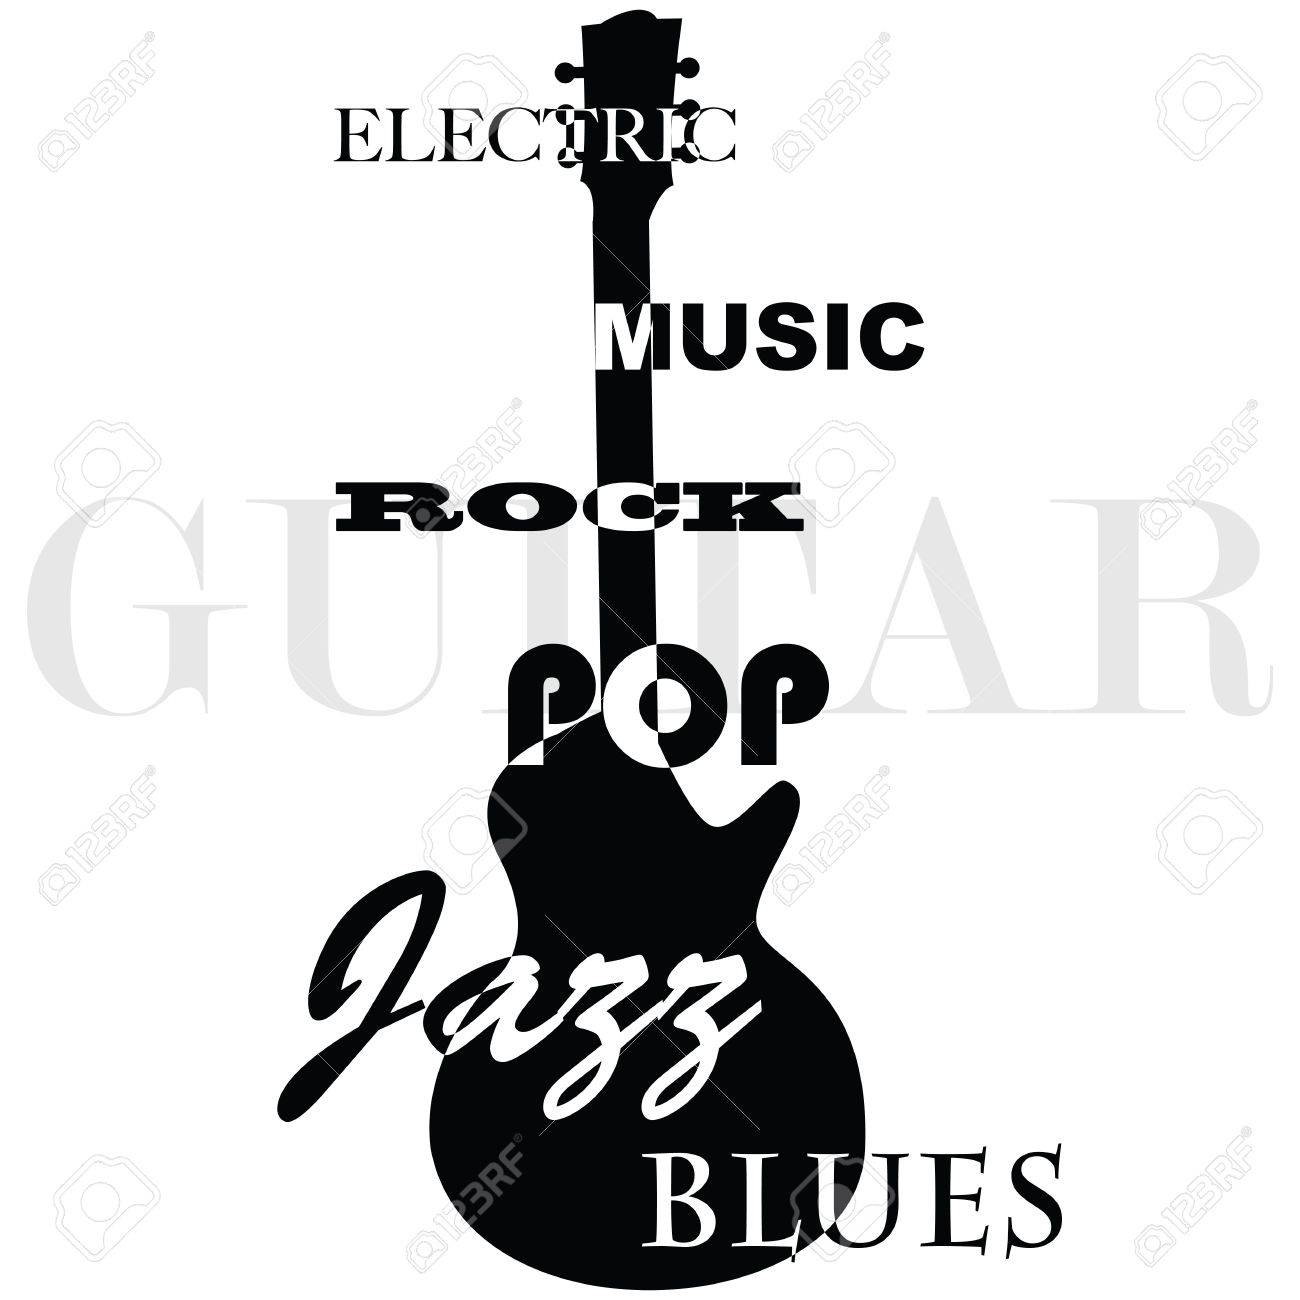 Concept illustration showing the outline of an electric guitar with the music genres written over it Stock Vector - 10872191